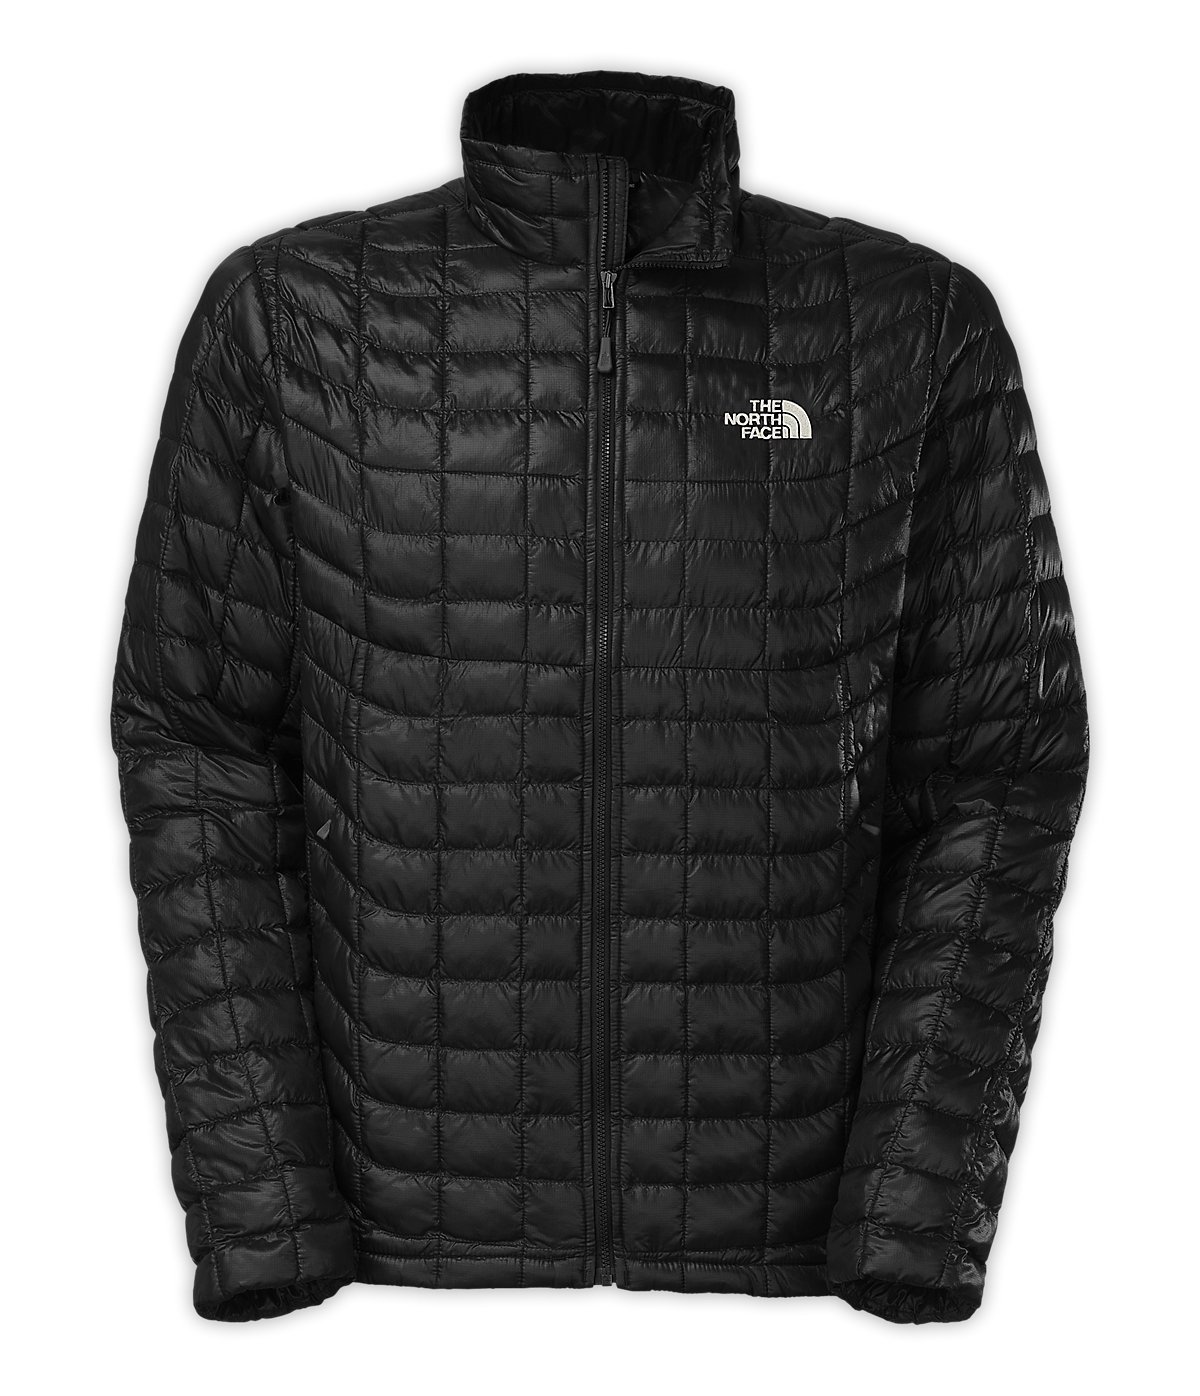 Thermoball Full Zip Jacket By North Face